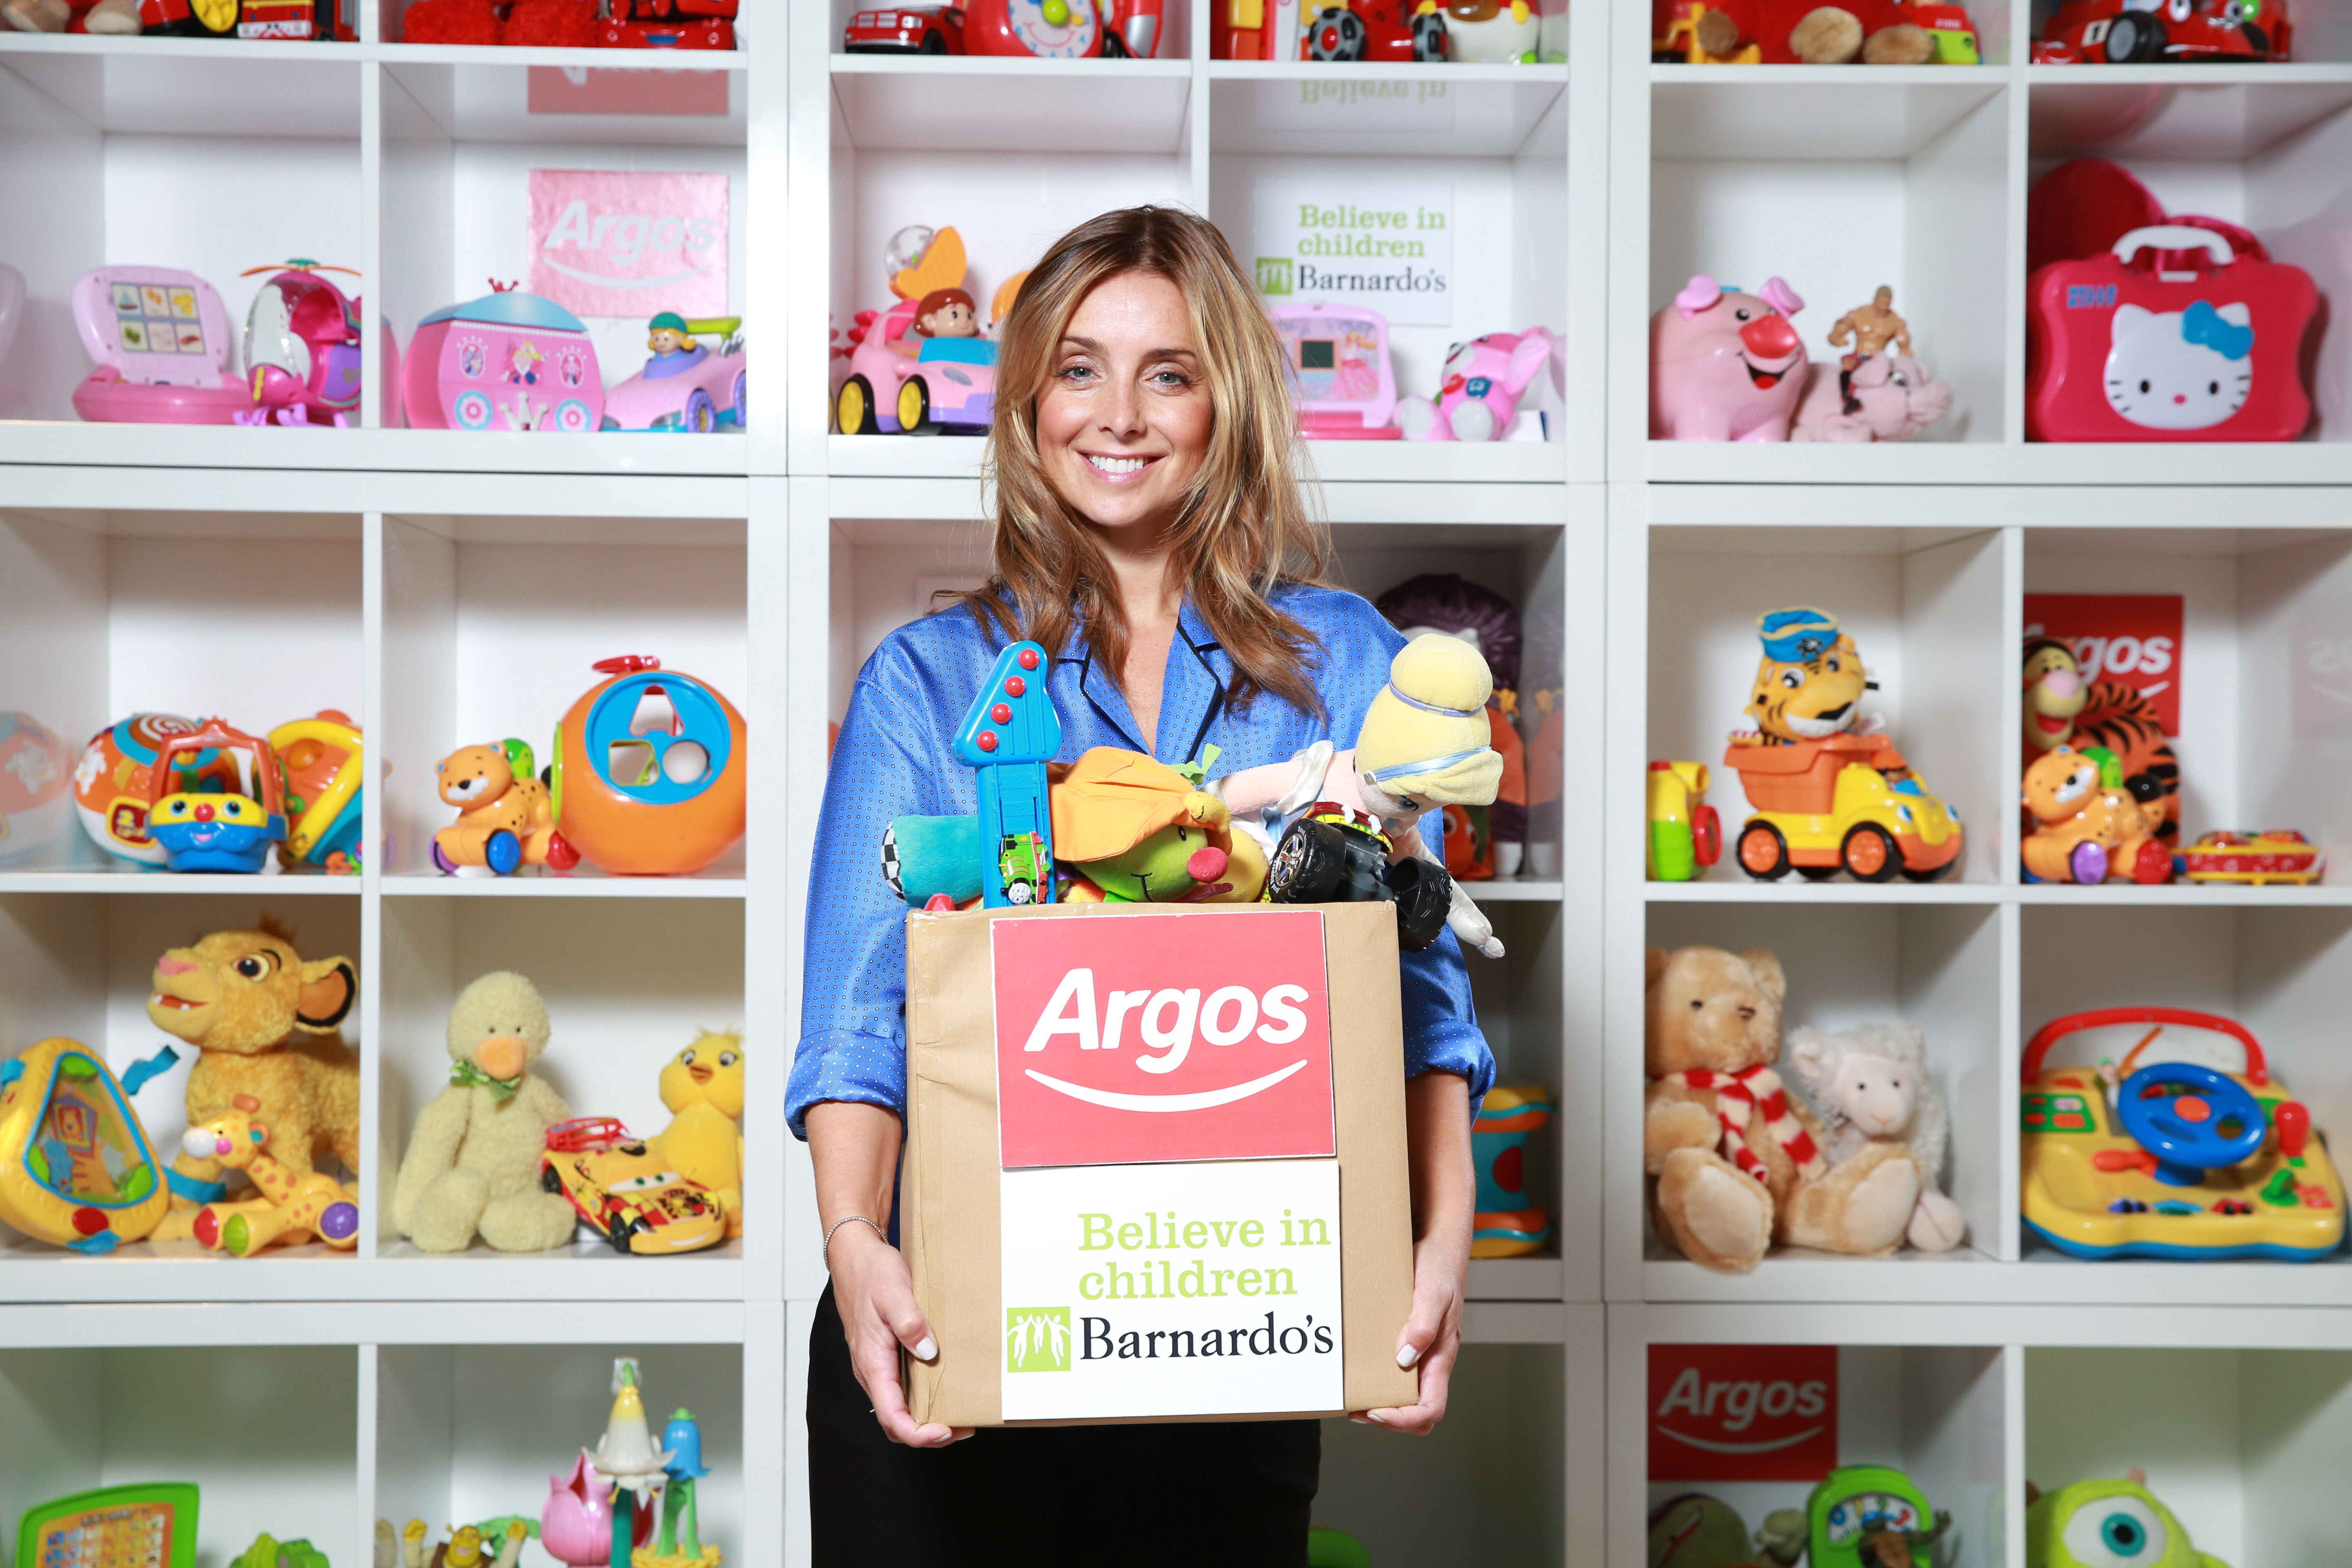 EDITORIAL USE ONLY Louise Redknapp launches the fourth annual Argos Toy Exchange, which aims to bring the amount raised by the initiative over the years to £2.5 million worth of toys for childrenÕs charity BarnardoÕs, at the Tottenham Court Road store in London. PRESS ASSOCIATION Photo. Picture date: Tuesday October 13, 2015. Photo credit should read: Matt Alexander/PA Wire